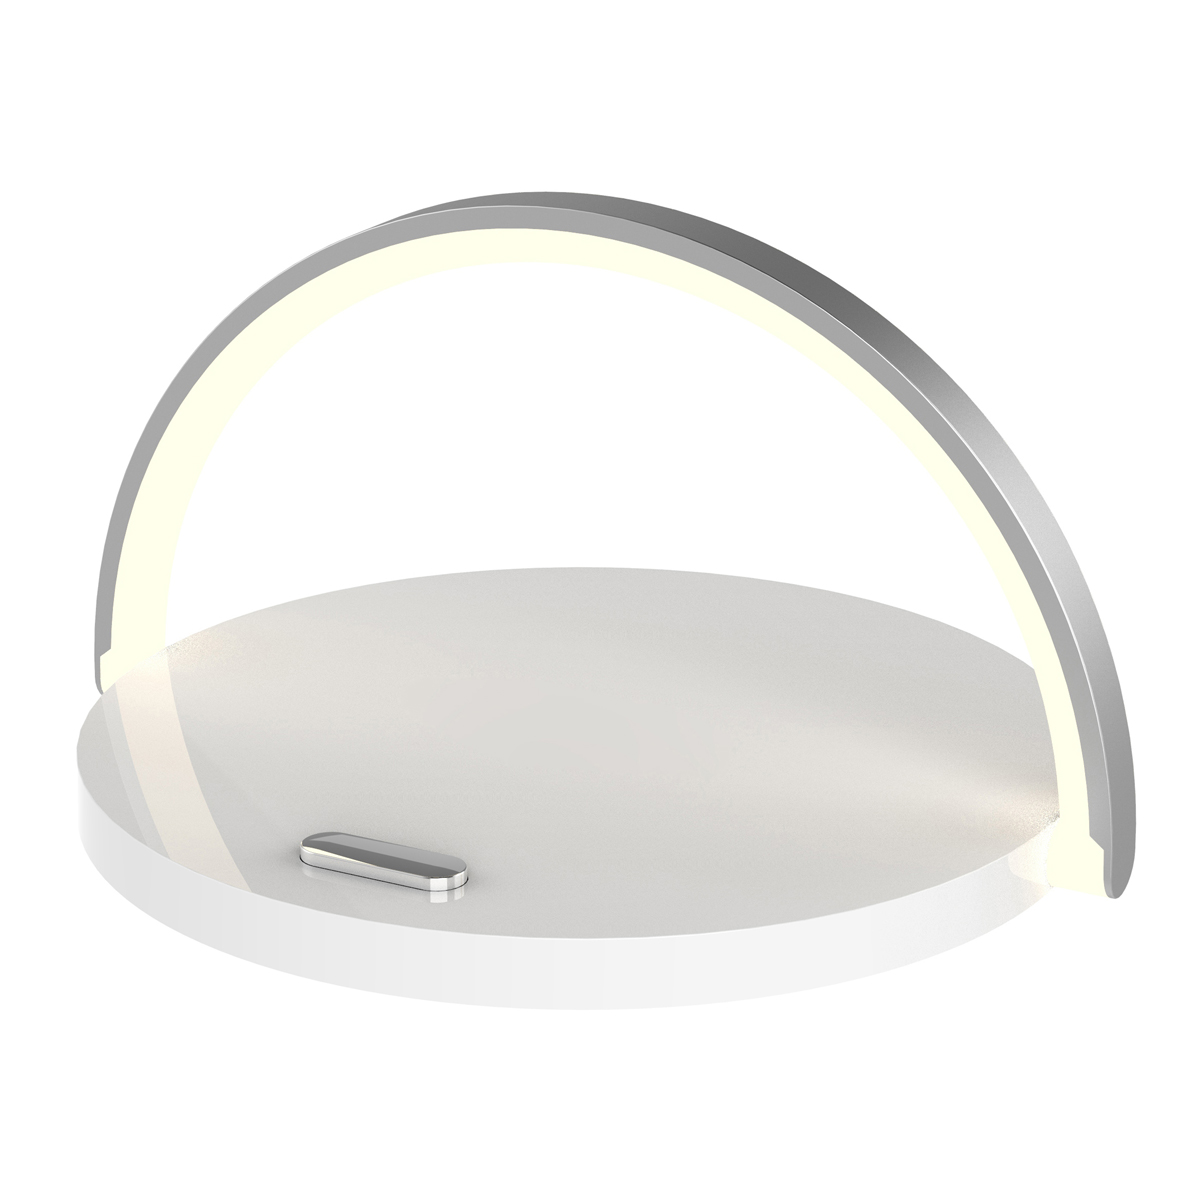 Platinet LED lamp met 10W QI wireless charger met 2A 1,2M USB-Ckabel